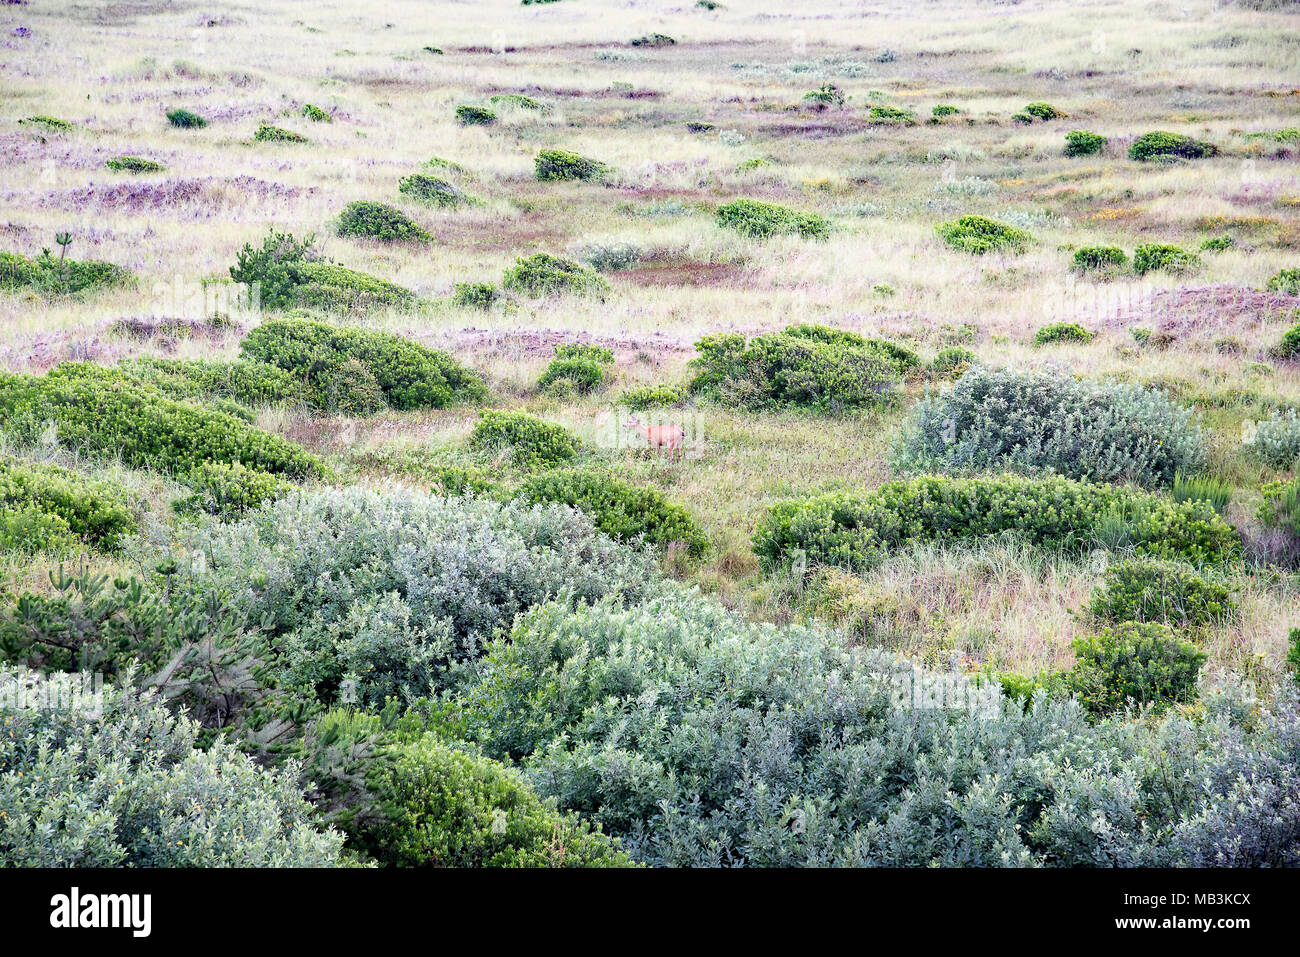 Photo taken early one morning from an Ocean Shores, Washington hotel room of a deer grazing among the grasses lining the shoreline. - Stock Image